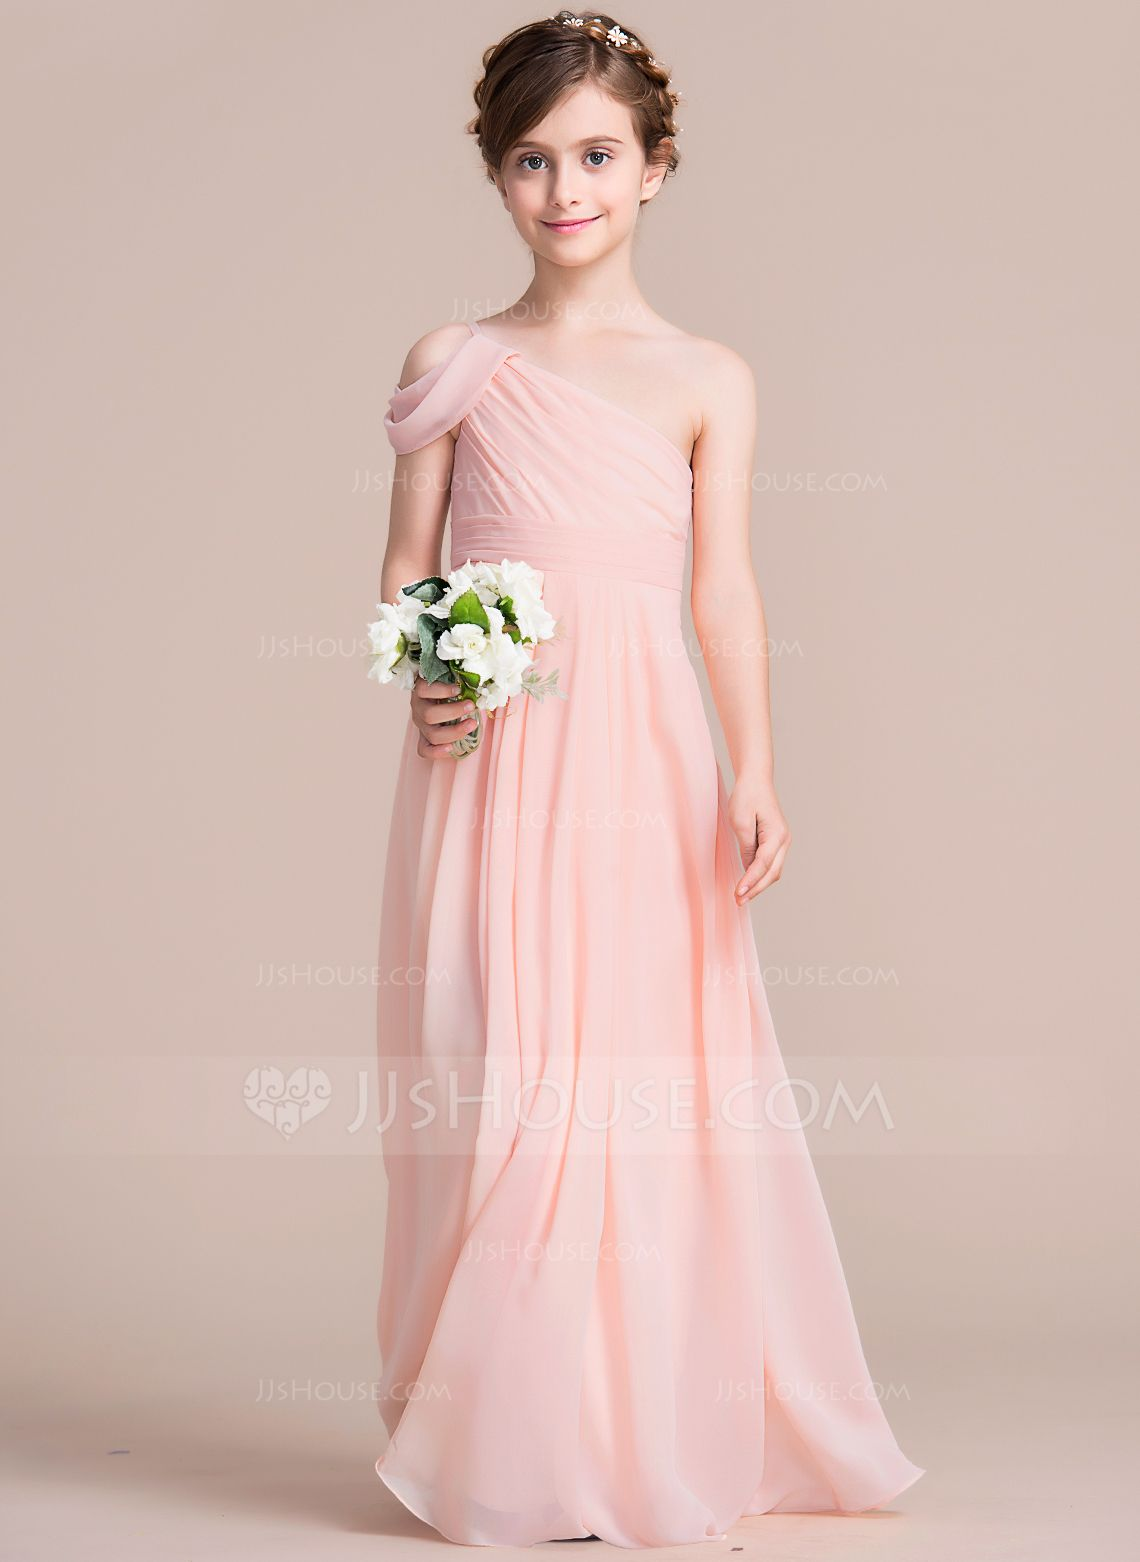 Young girls wedding dresses  JJsHouse as the global leading online retailer provides a large